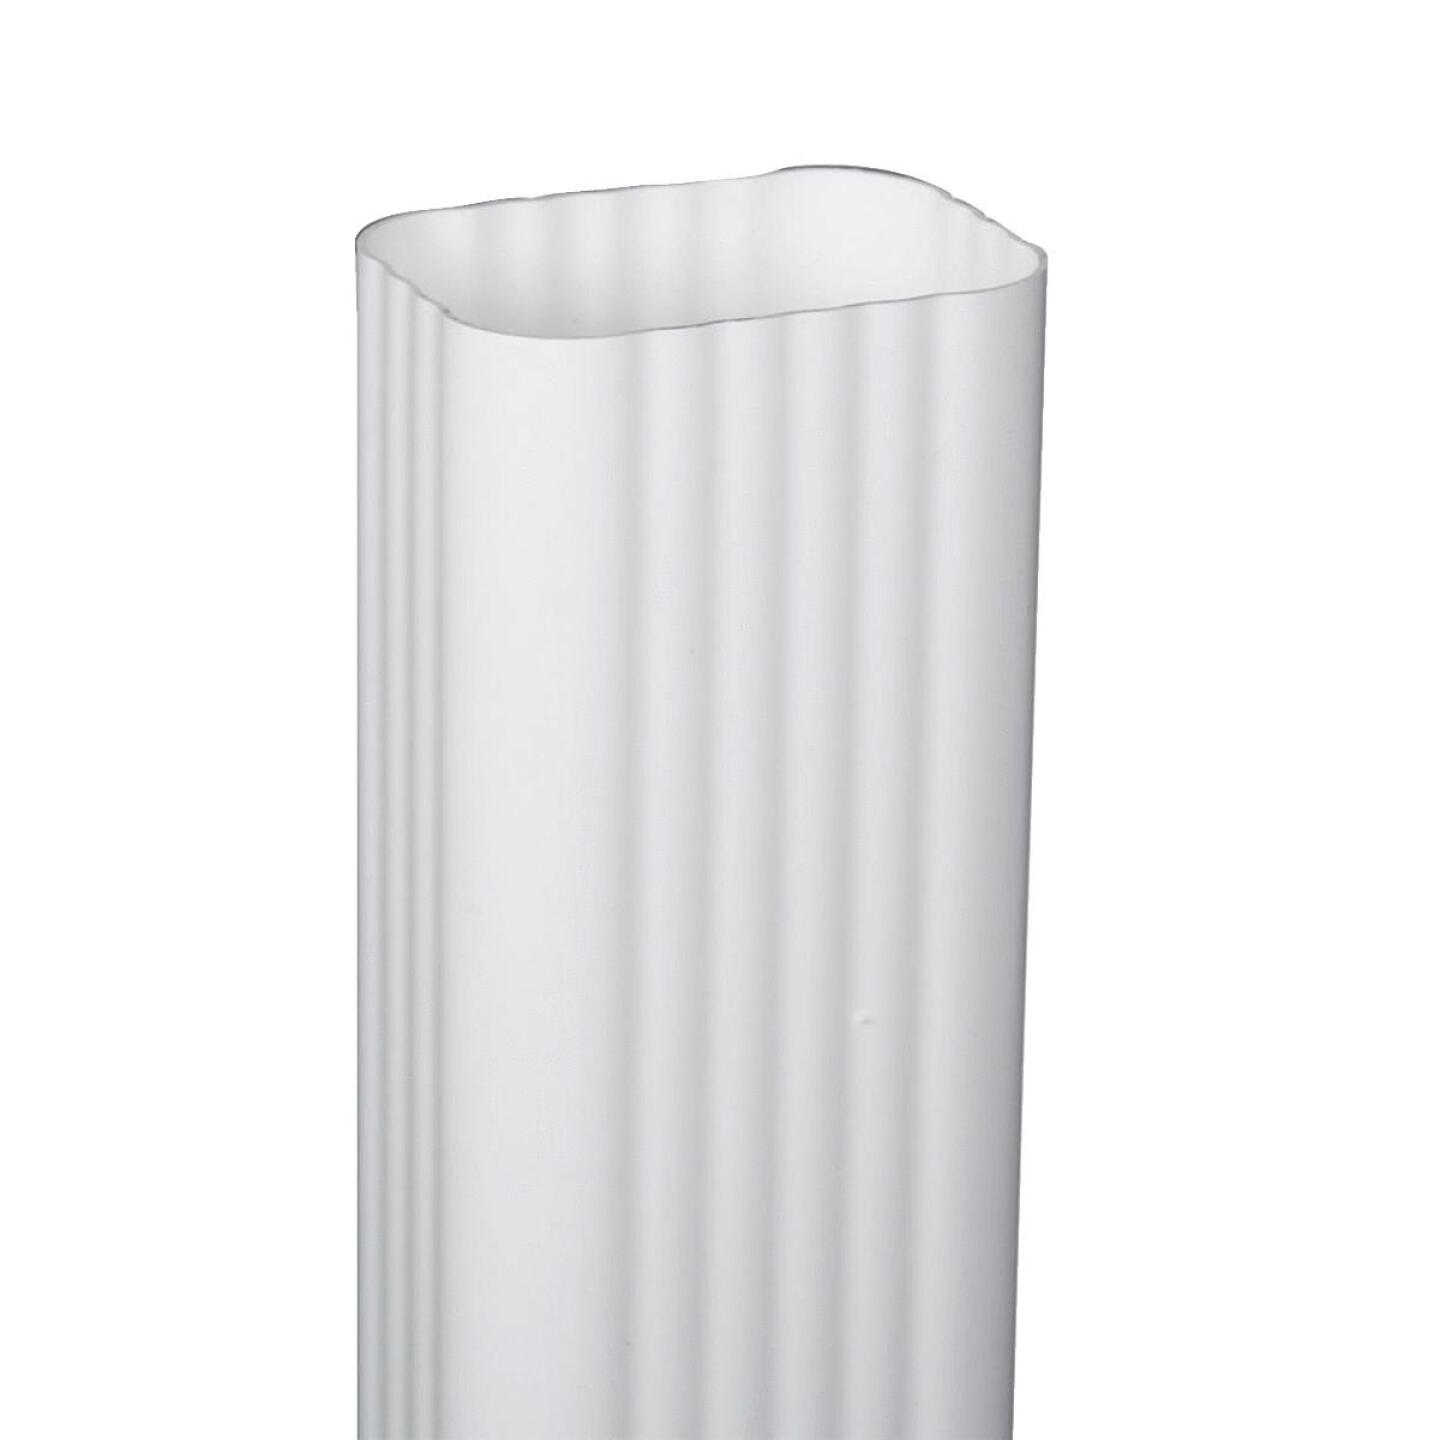 Amerimax 2 In. x 3 In. x 10 Ft. Traditional K-Style White Vinyl Downspout Image 1